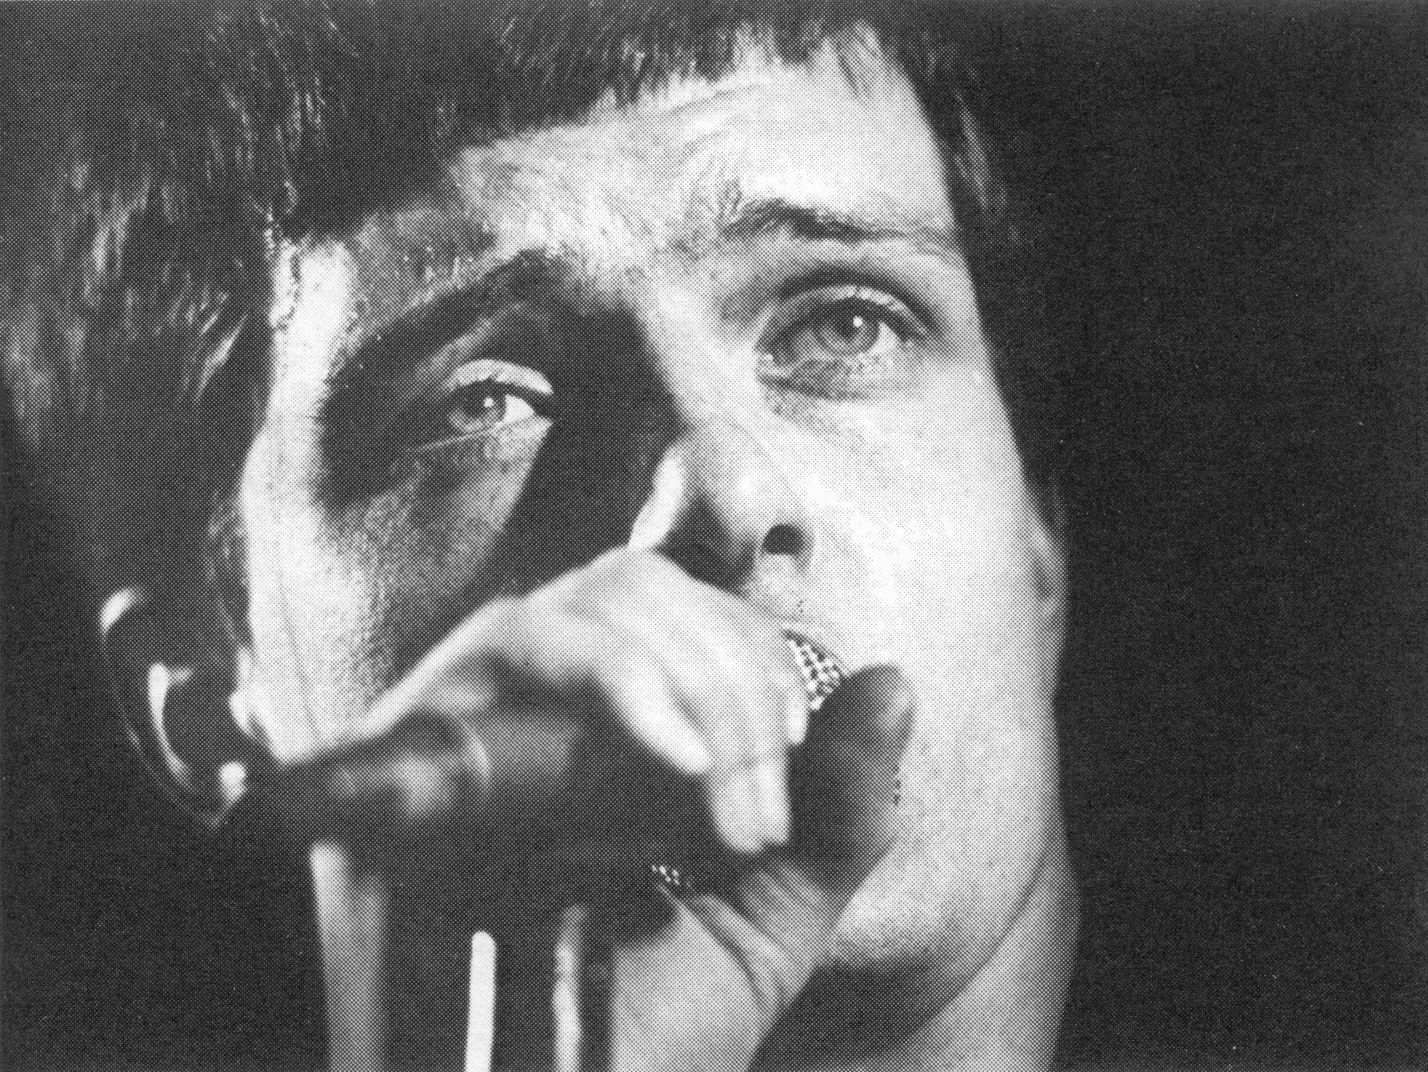 Ian Curtis facts